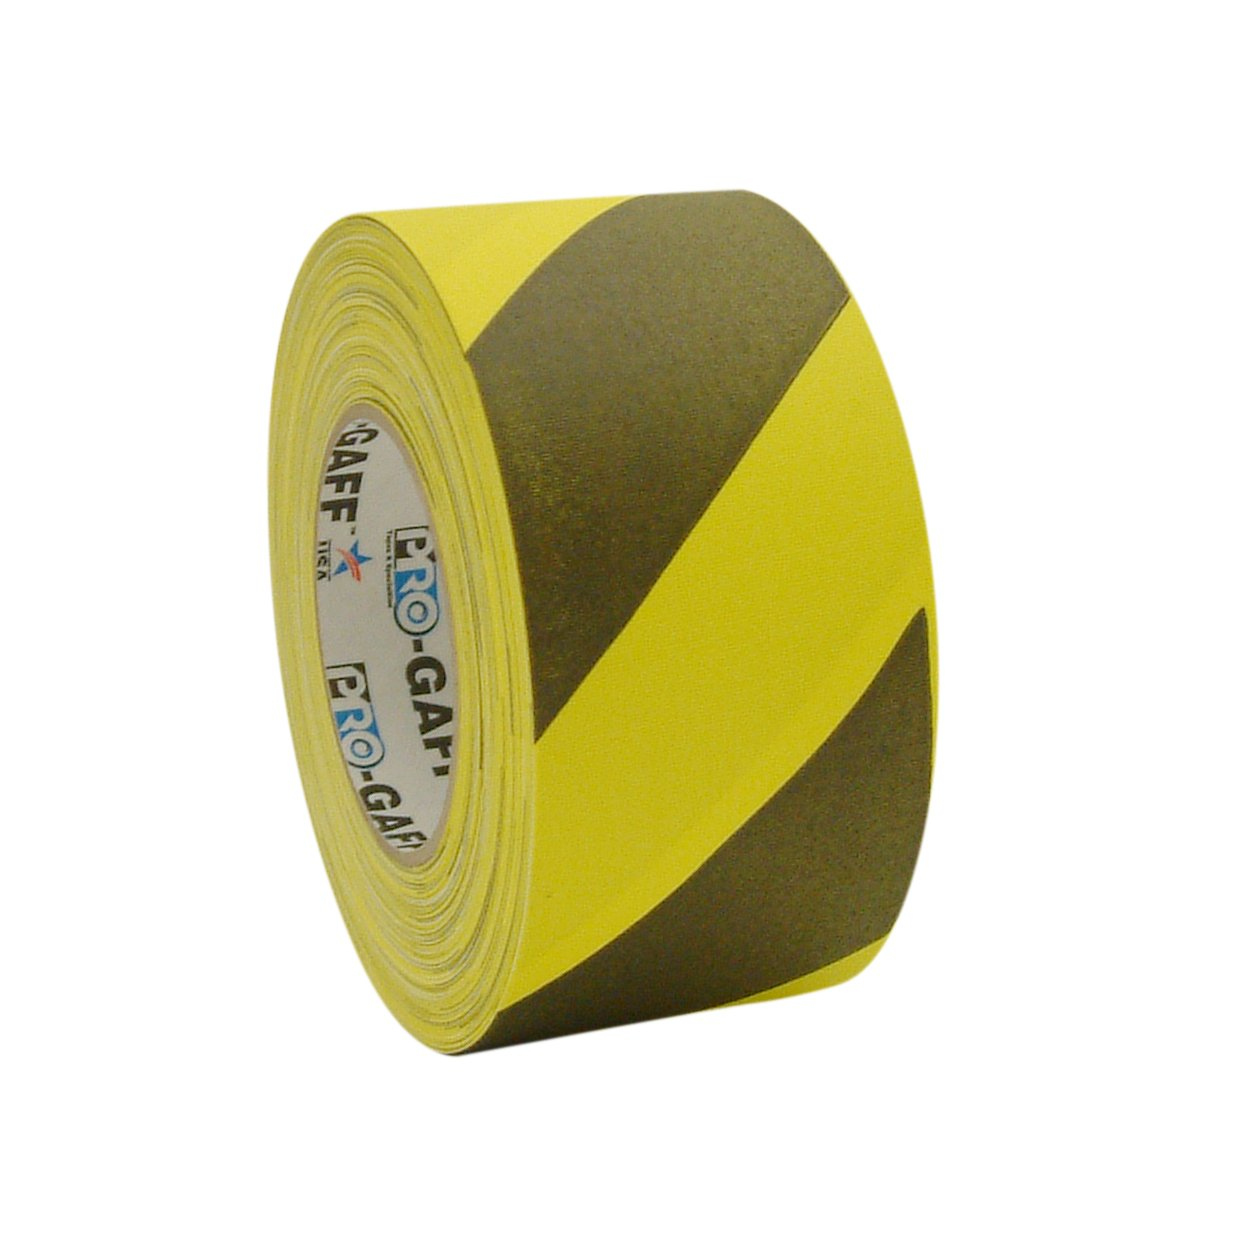 Pro Tapes Striped PRO-GAFF/YECCS355 Printed Pro-Gaff Gaffers Tape: 3'' x 55 yd, Yellow/Black